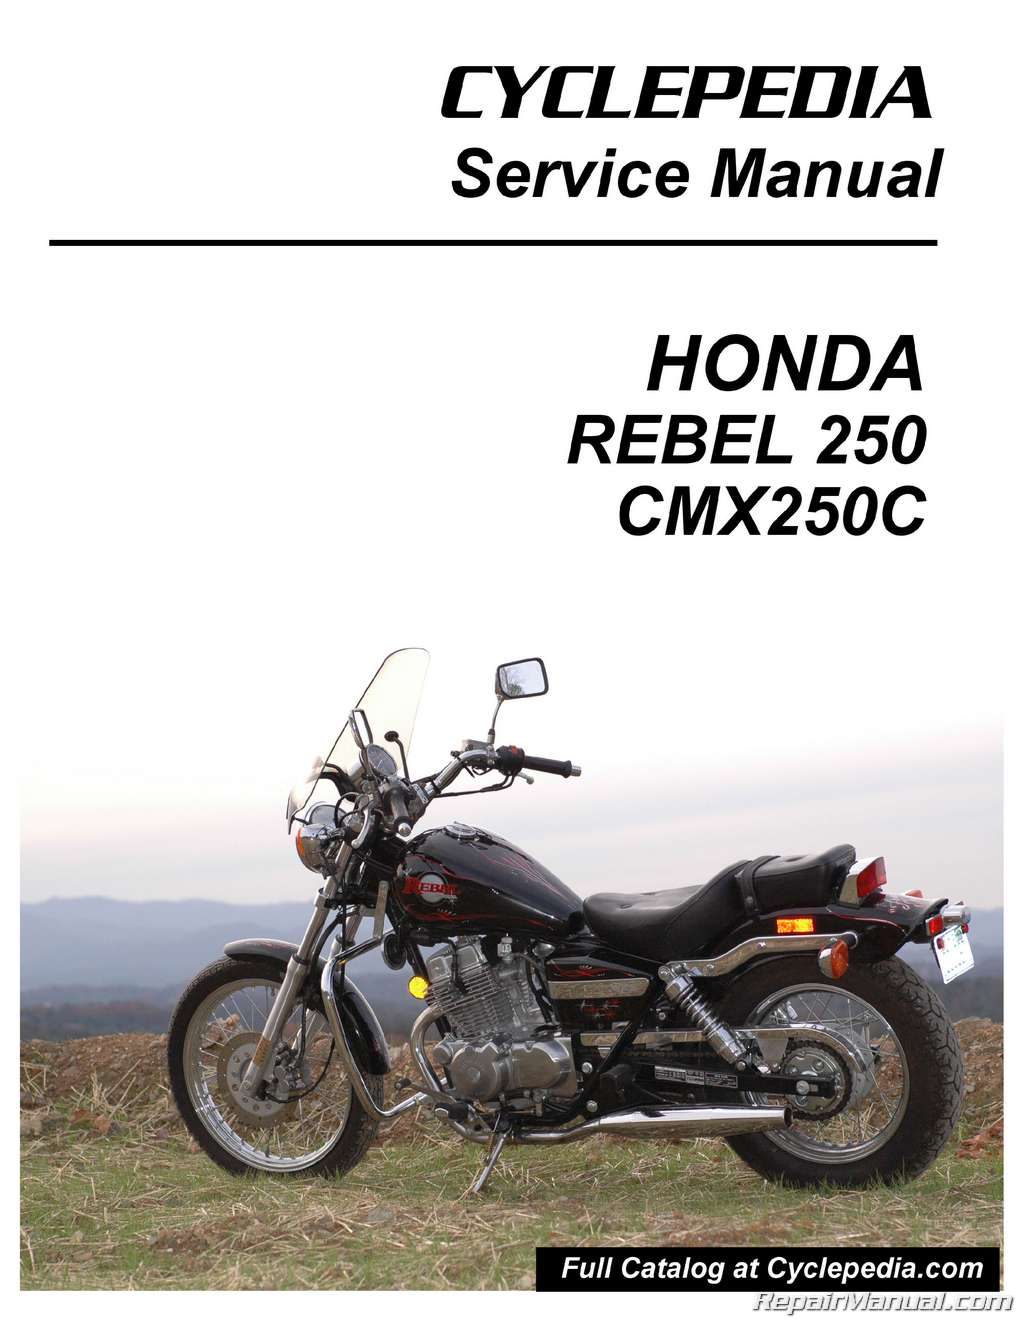 Back Download Honda CMX 250 C picture # 7, size 1024x1325 Next